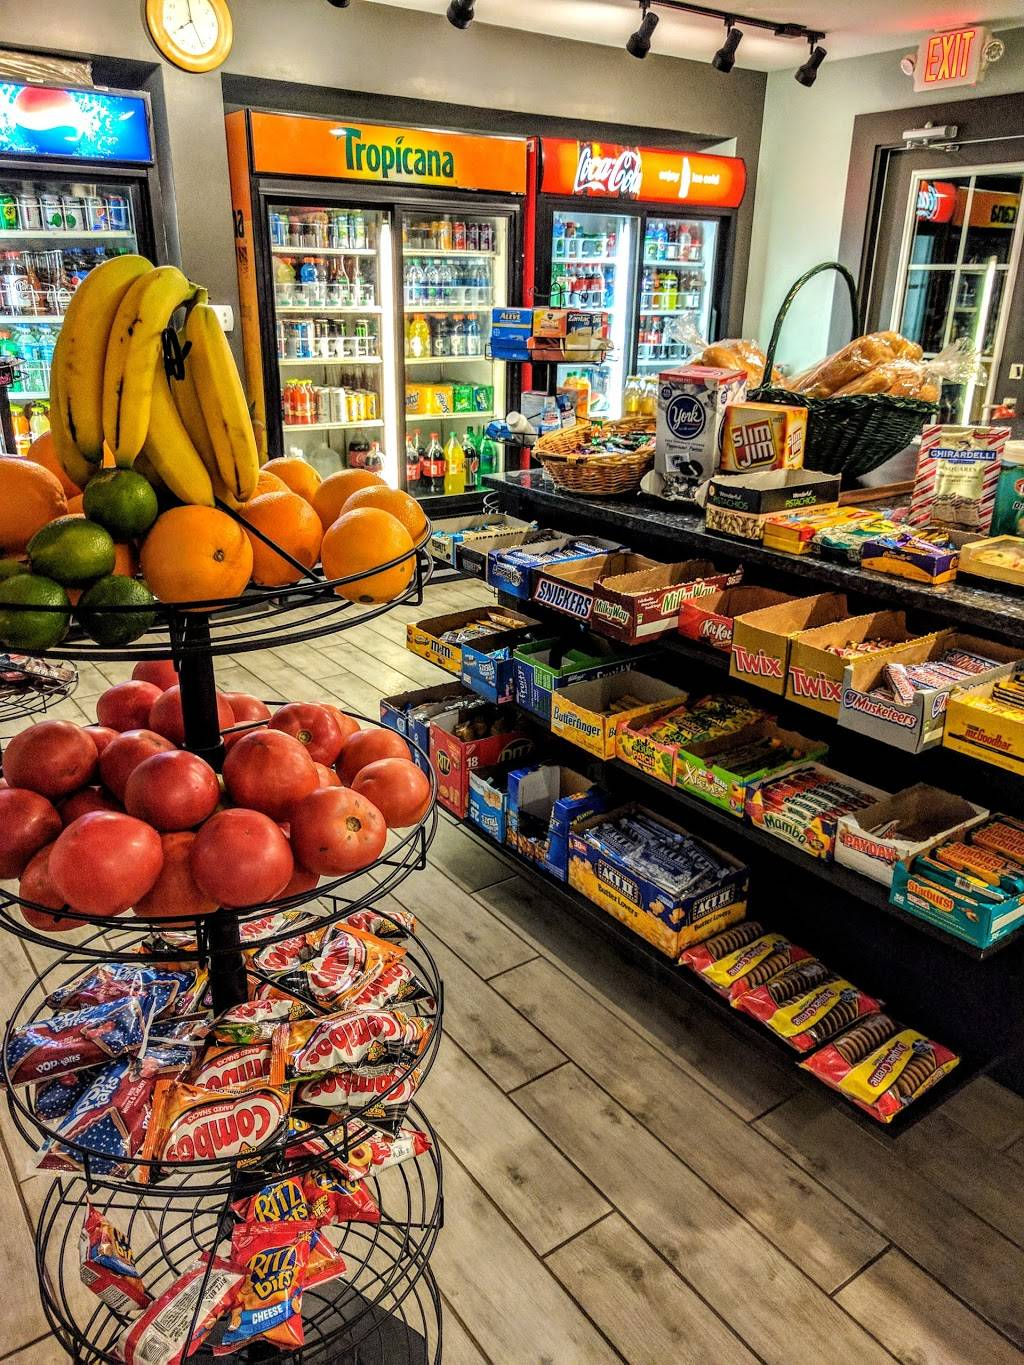 Bayside Market - convenience store  | Photo 1 of 2 | Address: 6301 S West Shore Blvd, Tampa, FL 33616, USA | Phone: (813) 559-7319